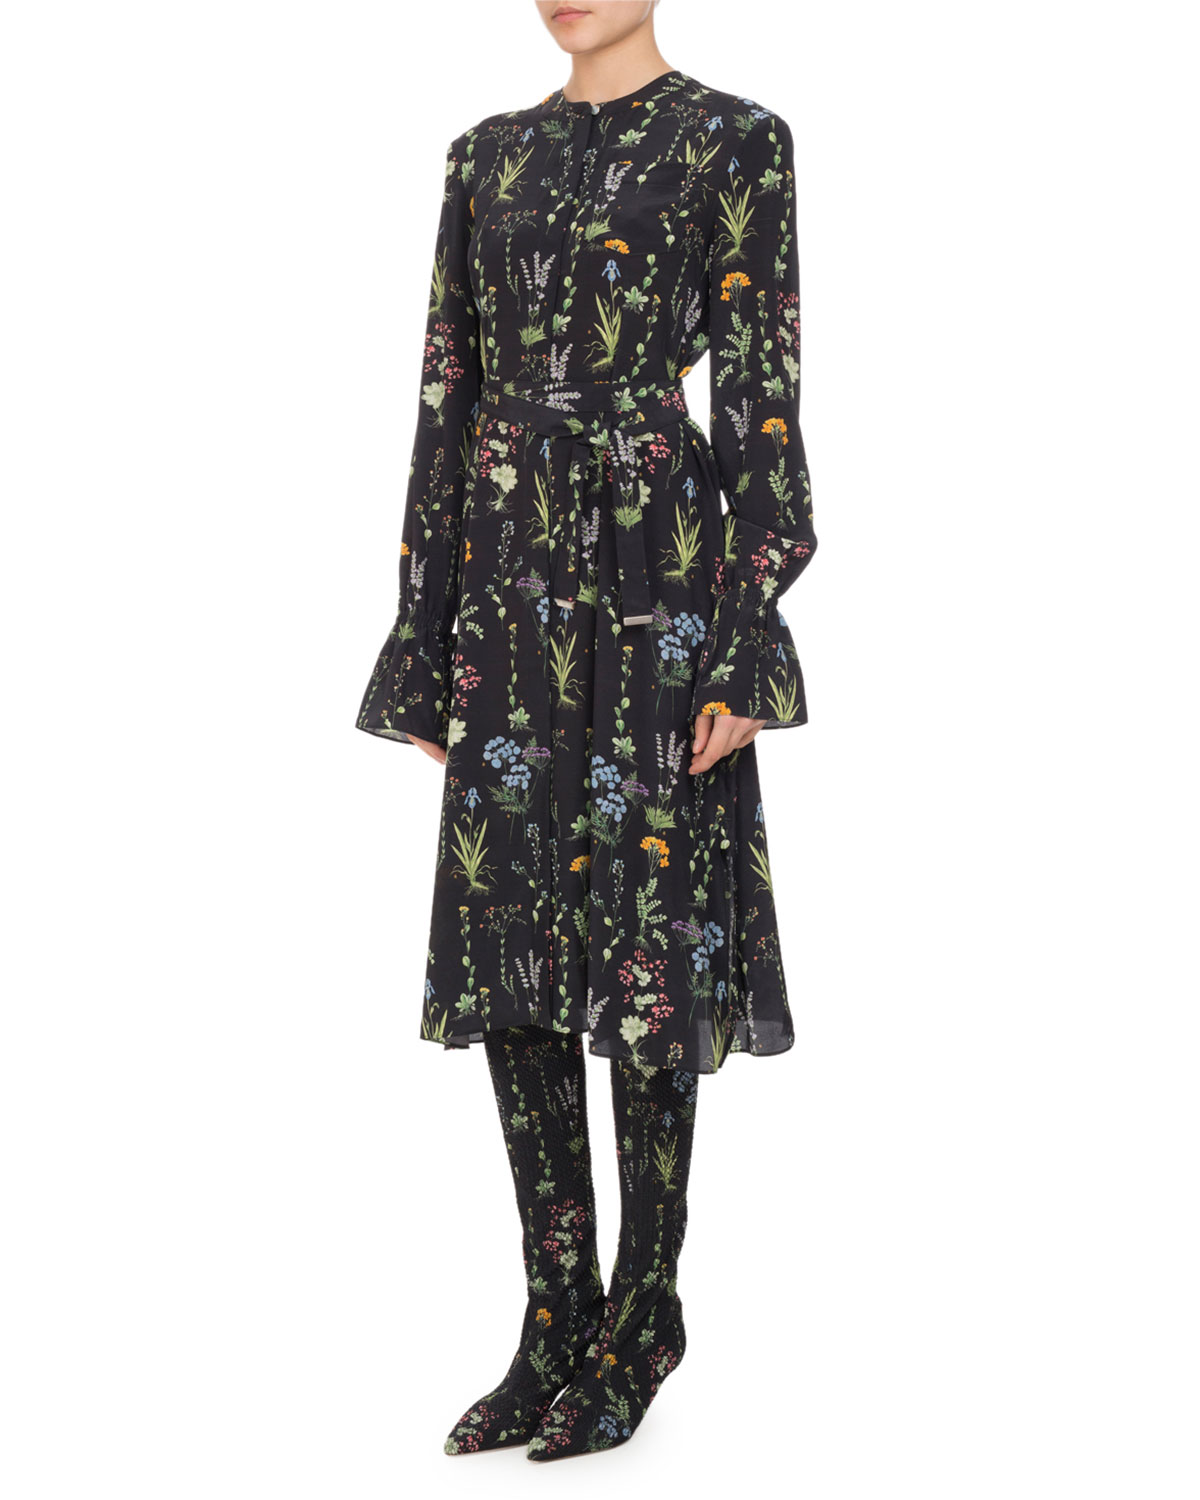 Leighton Floral-Print Ruffle-Cuff Dress, Multi